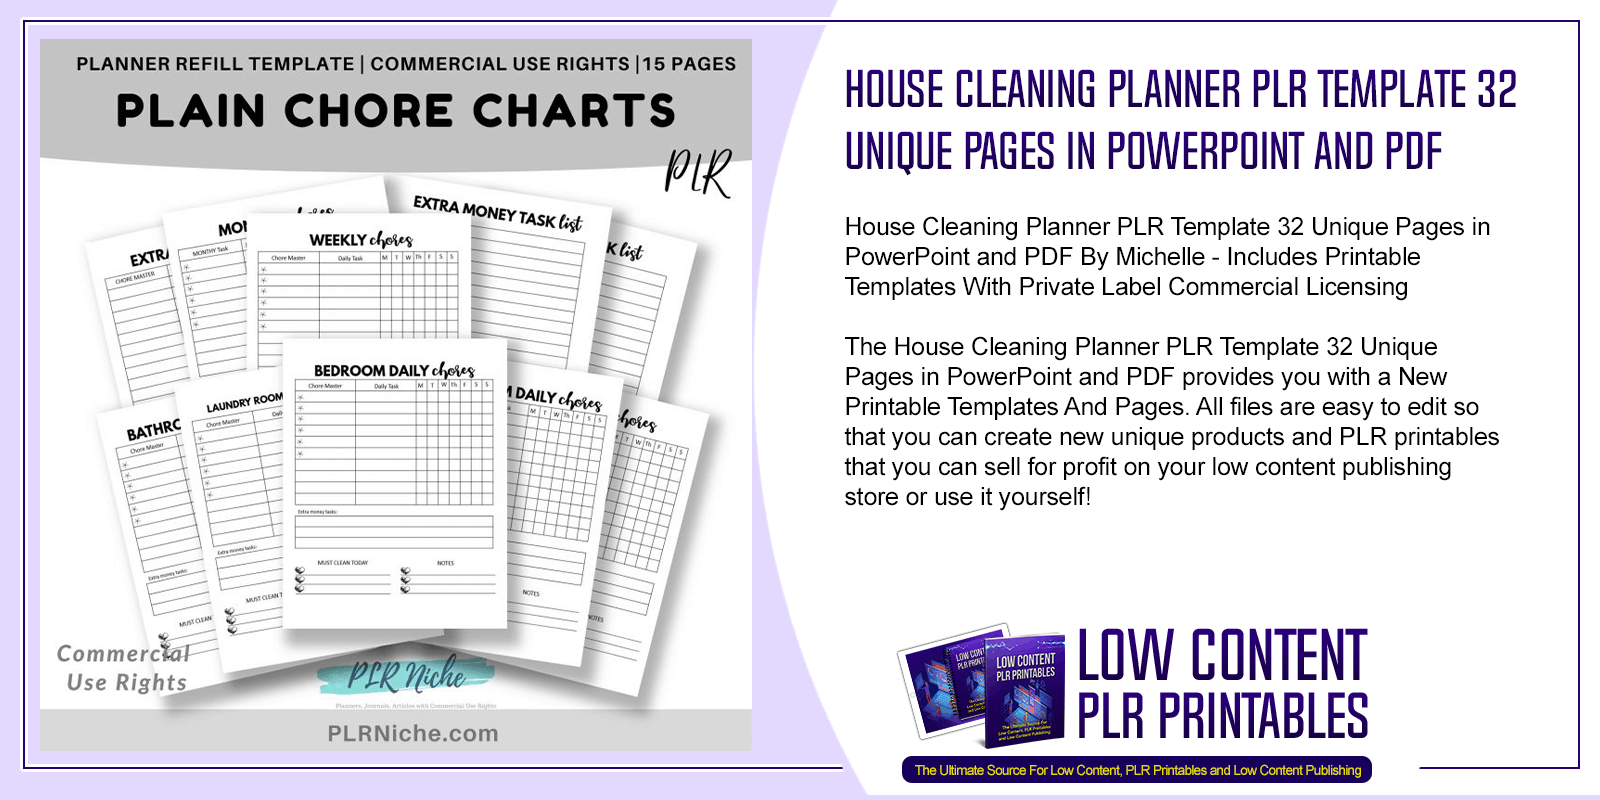 House Cleaning Planner PLR Template 32 Unique Pages in PowerPoint and PDF